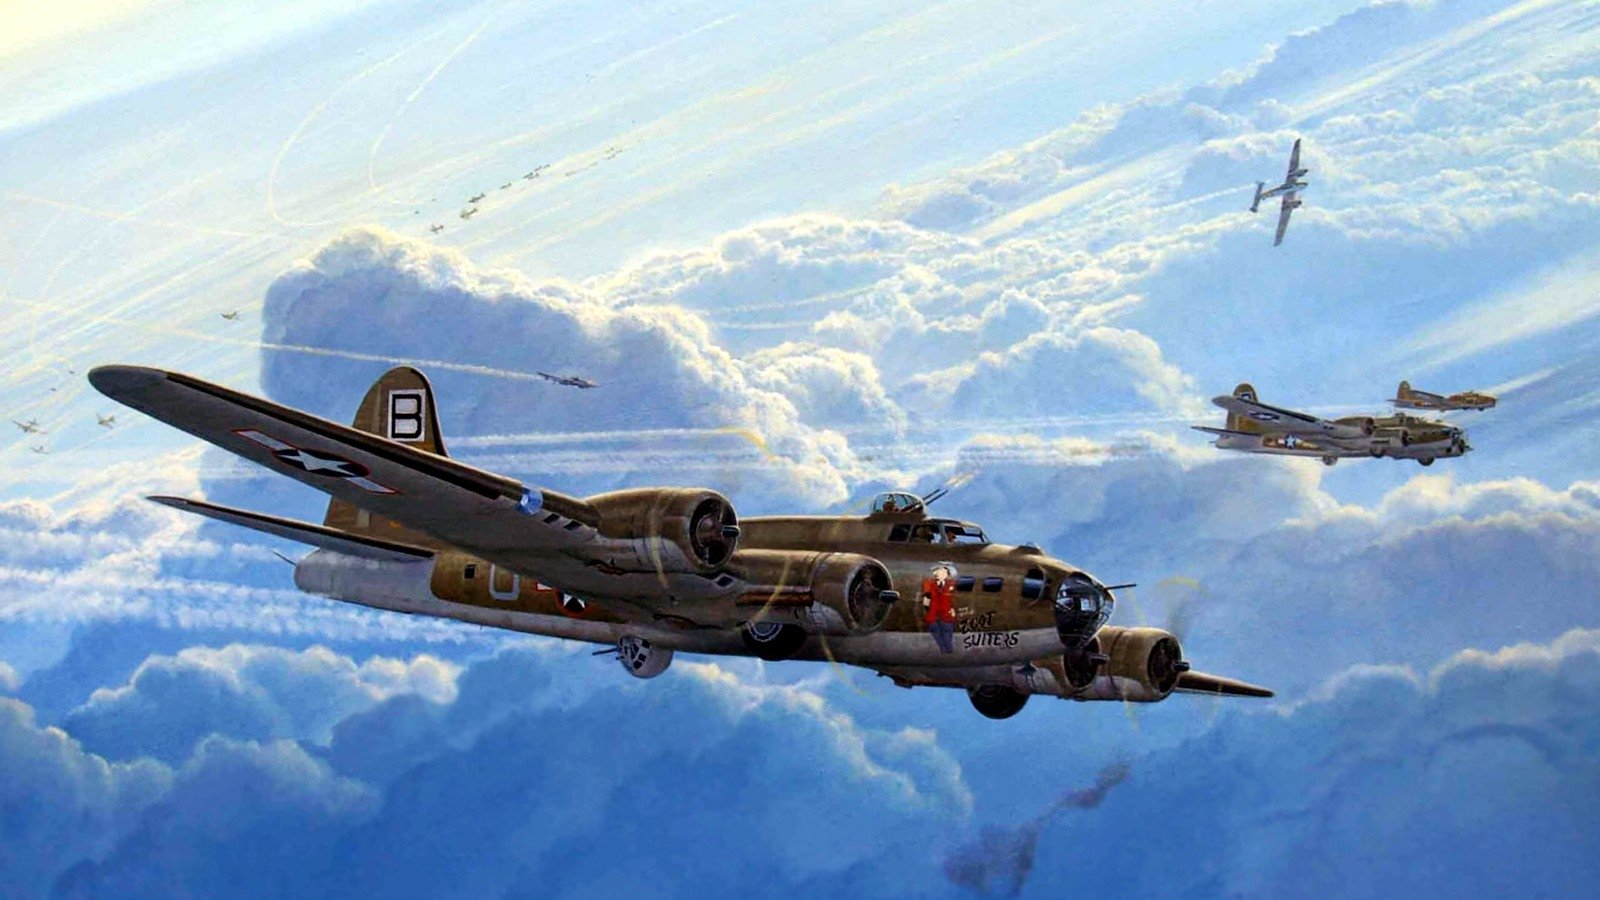 Boeing B 17 Flying Fortress Wallpaper and Background Image 1600x900